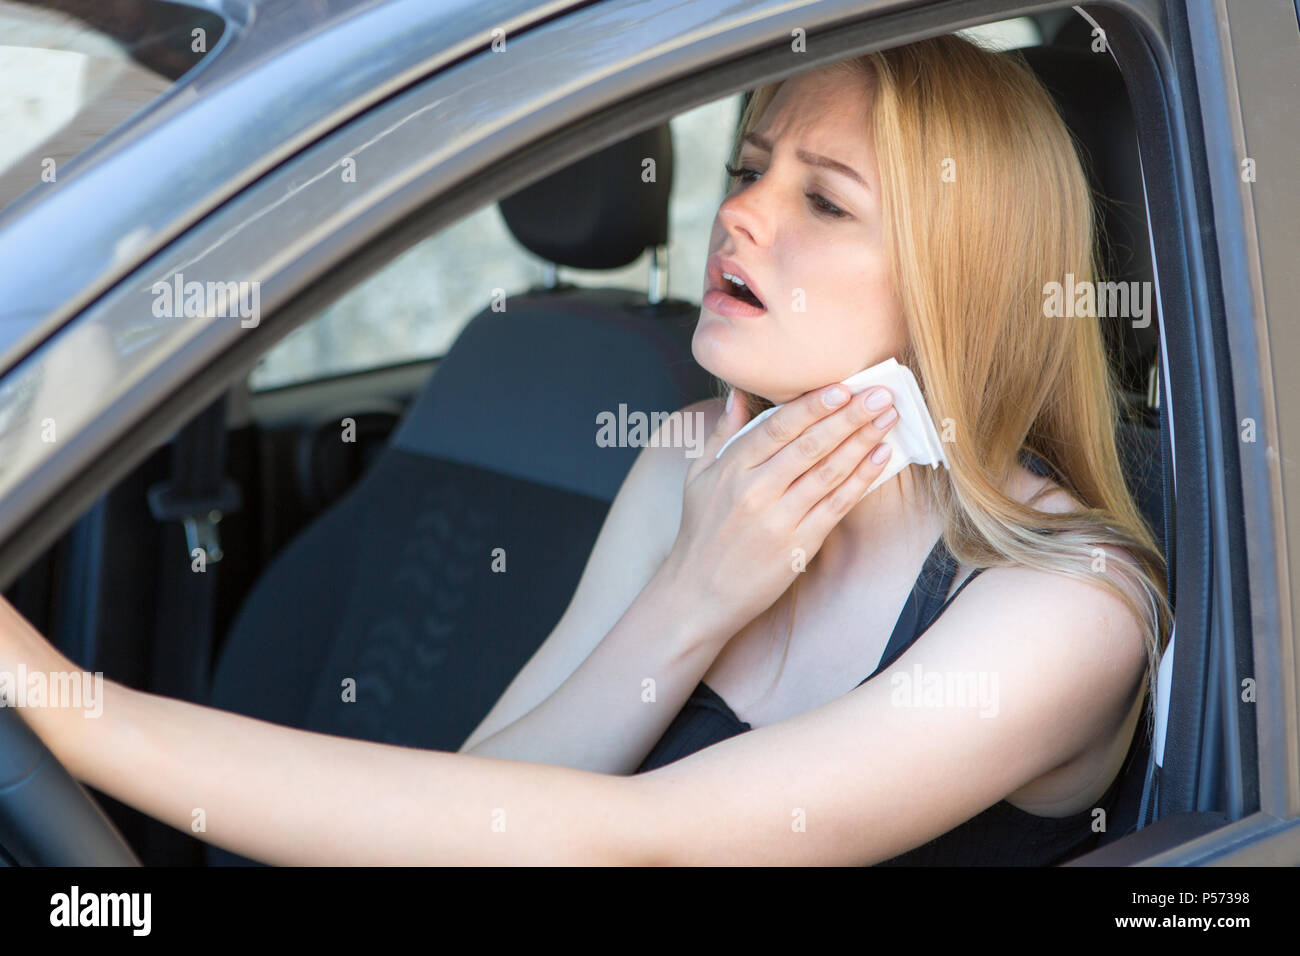 woman tired of heat in a car in summer - Stock Image